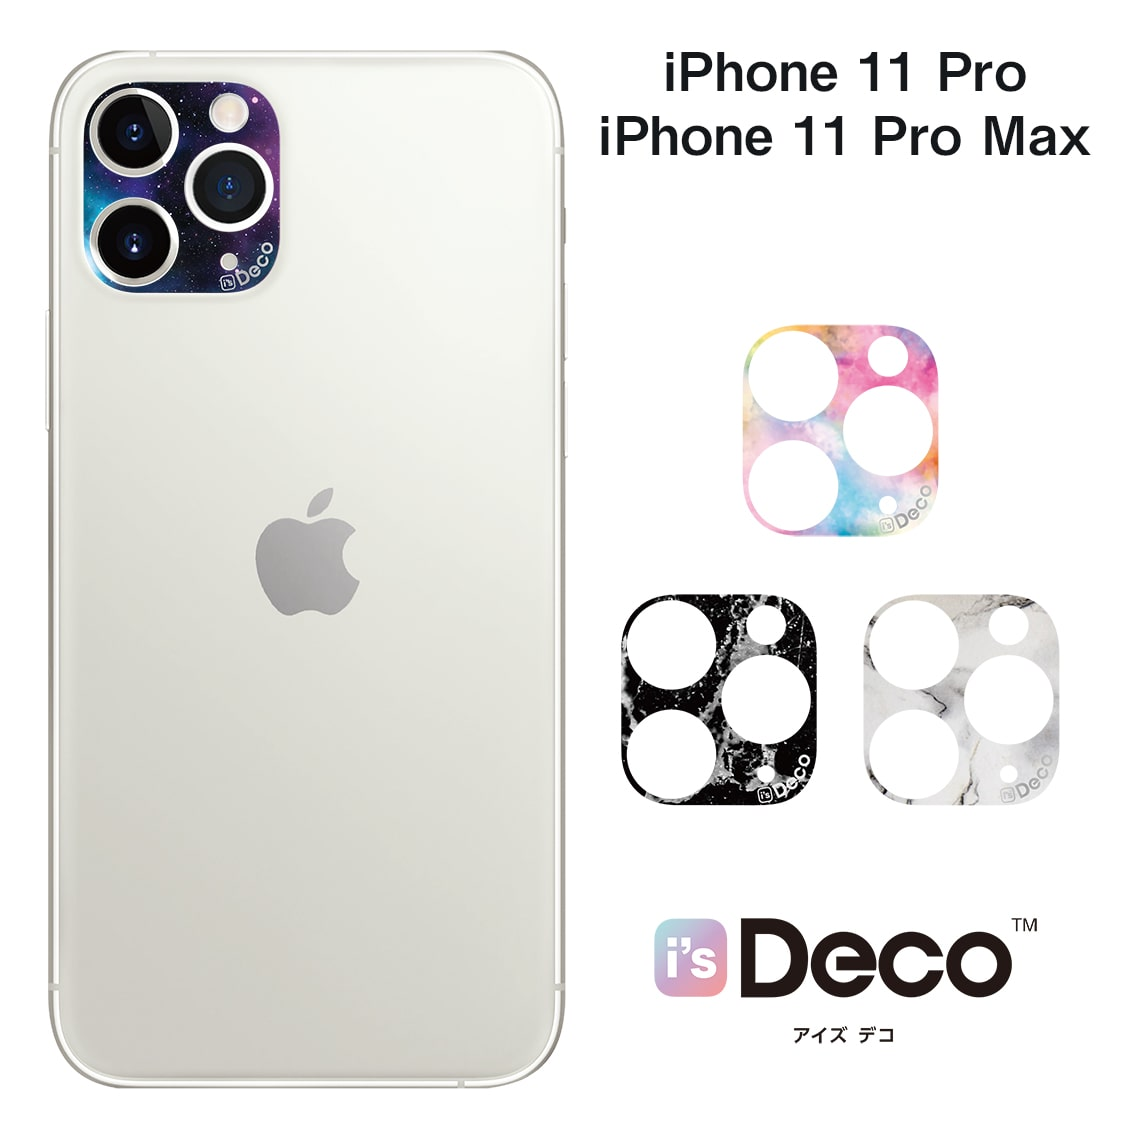 iPhone 11 Pro/11 Pro Max i's Deco [PATTERN (A05-A08)]